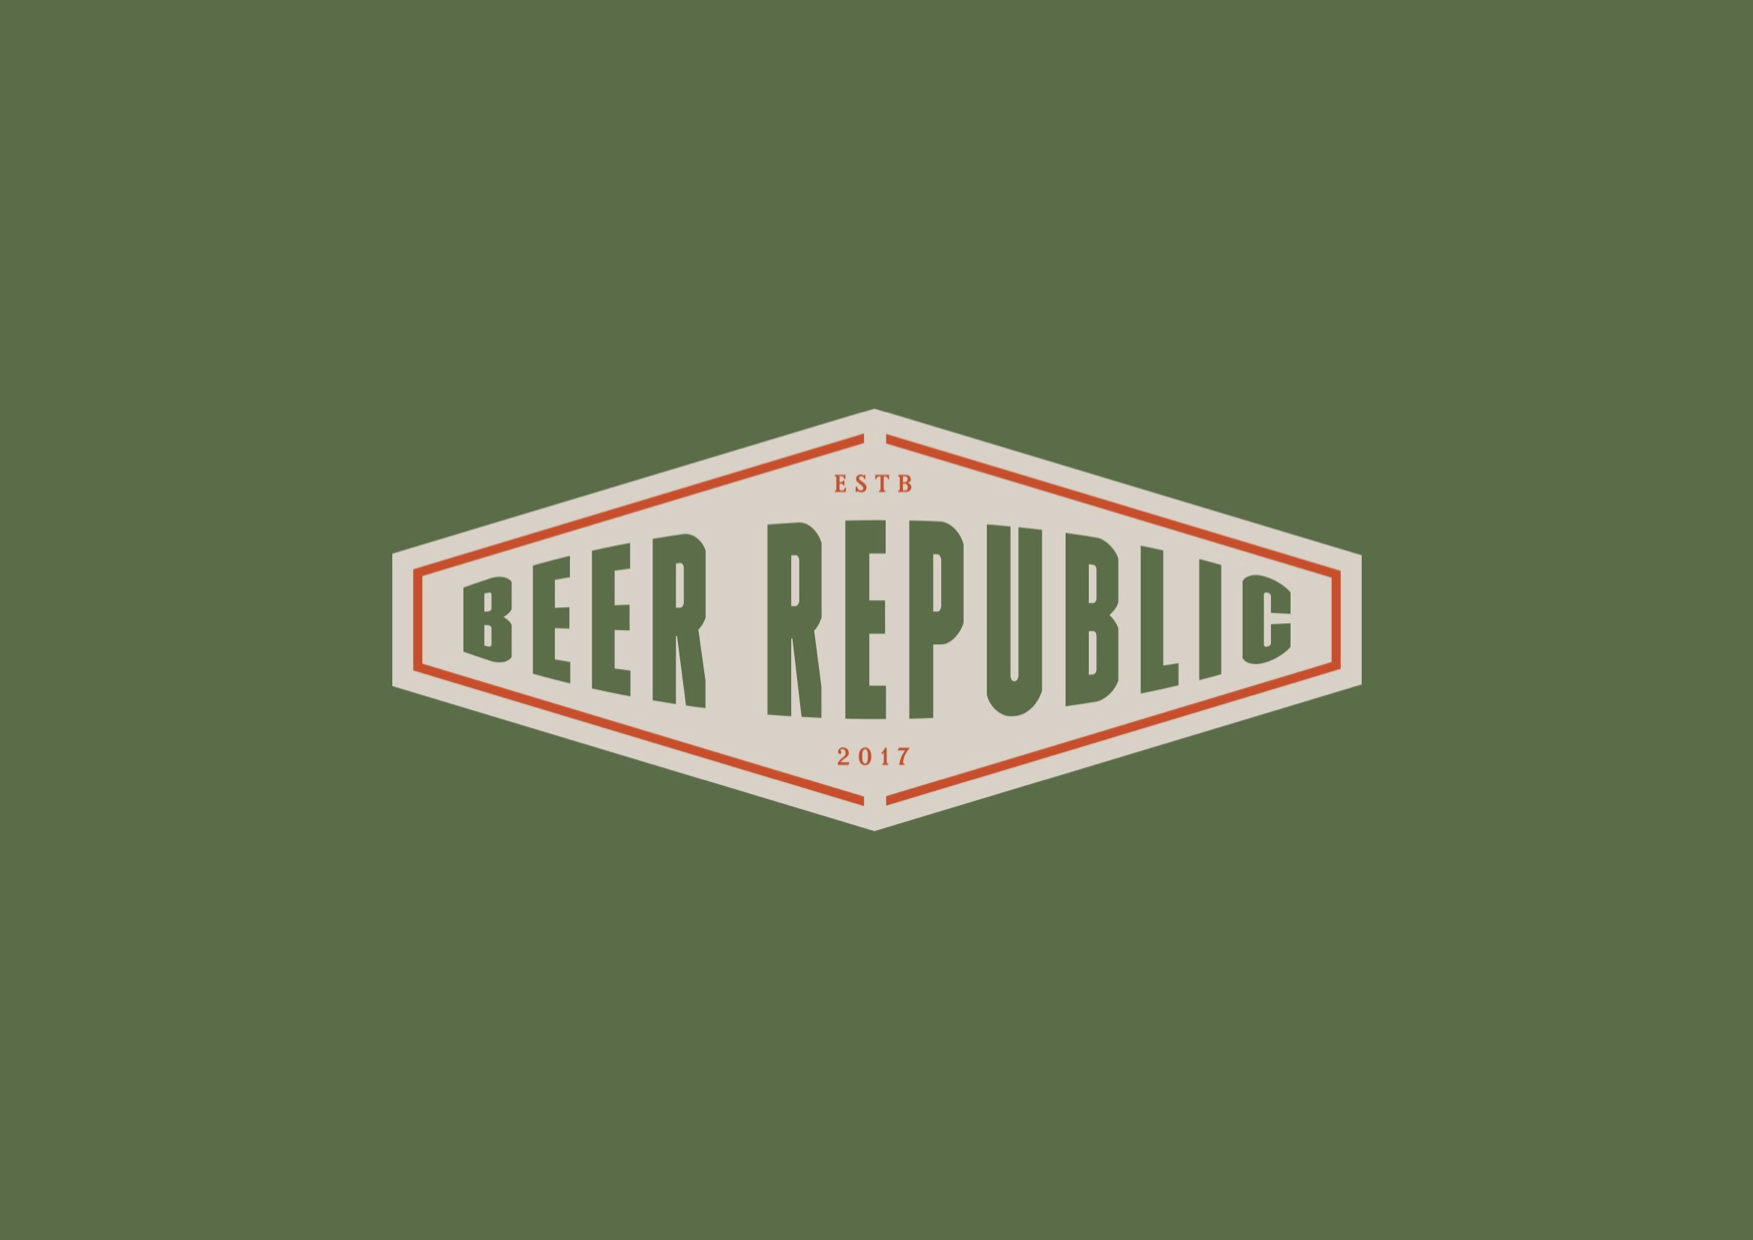 Beer Republic